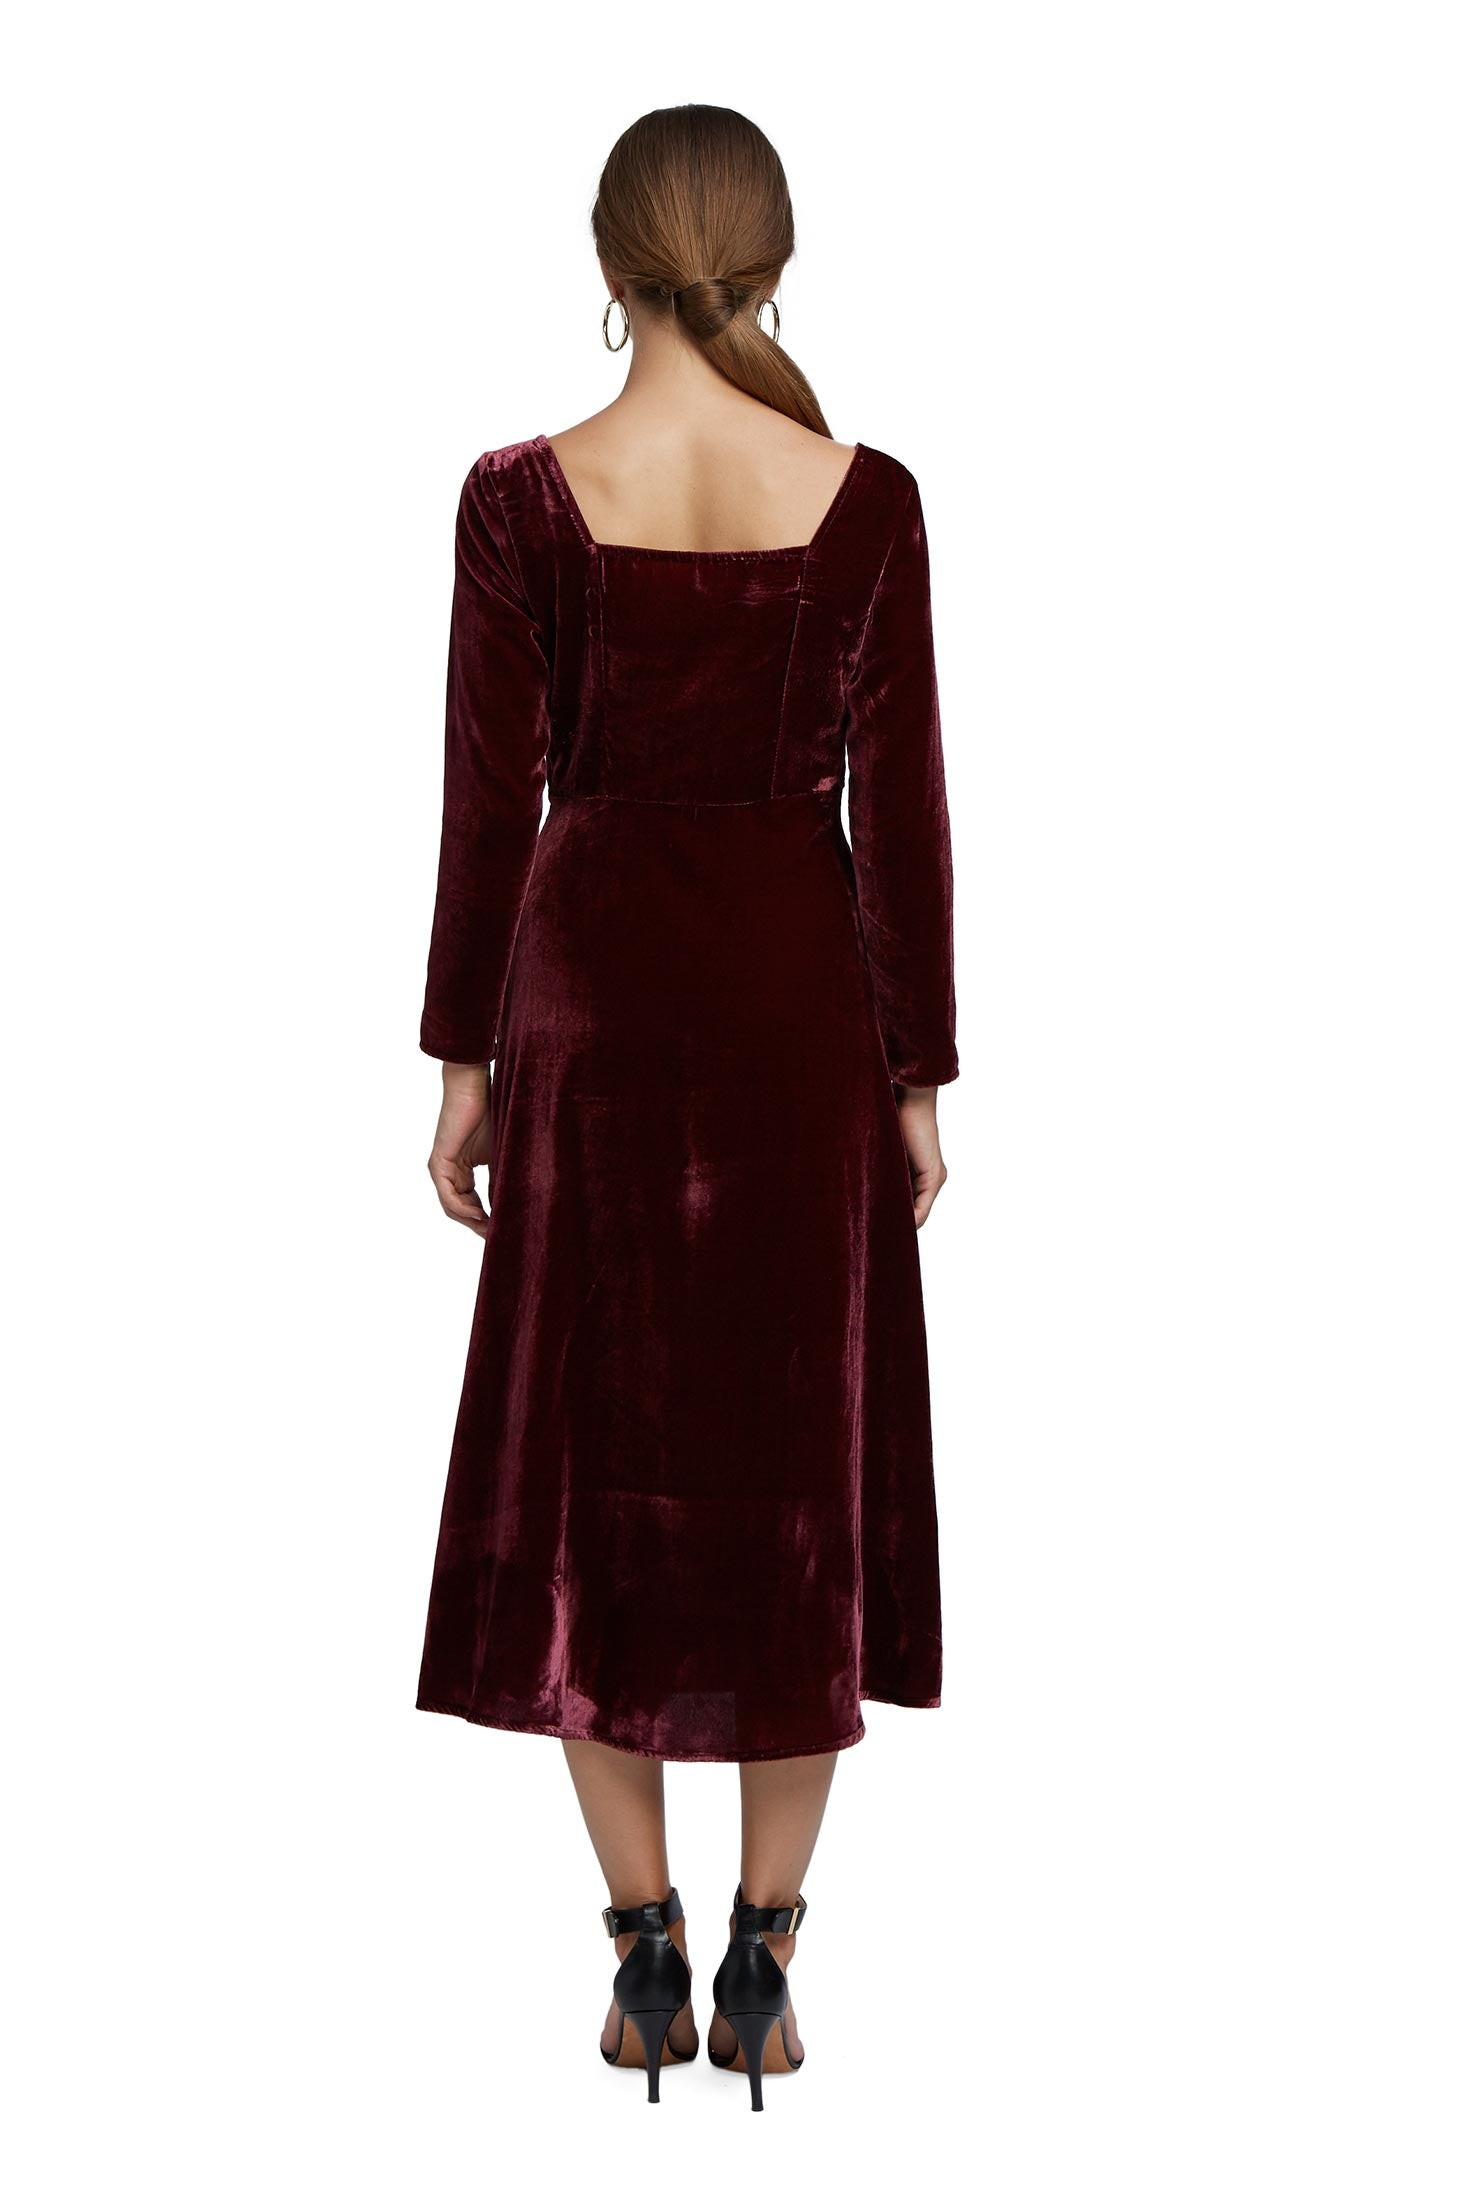 Coraline Dress - Bordeaux Velvet